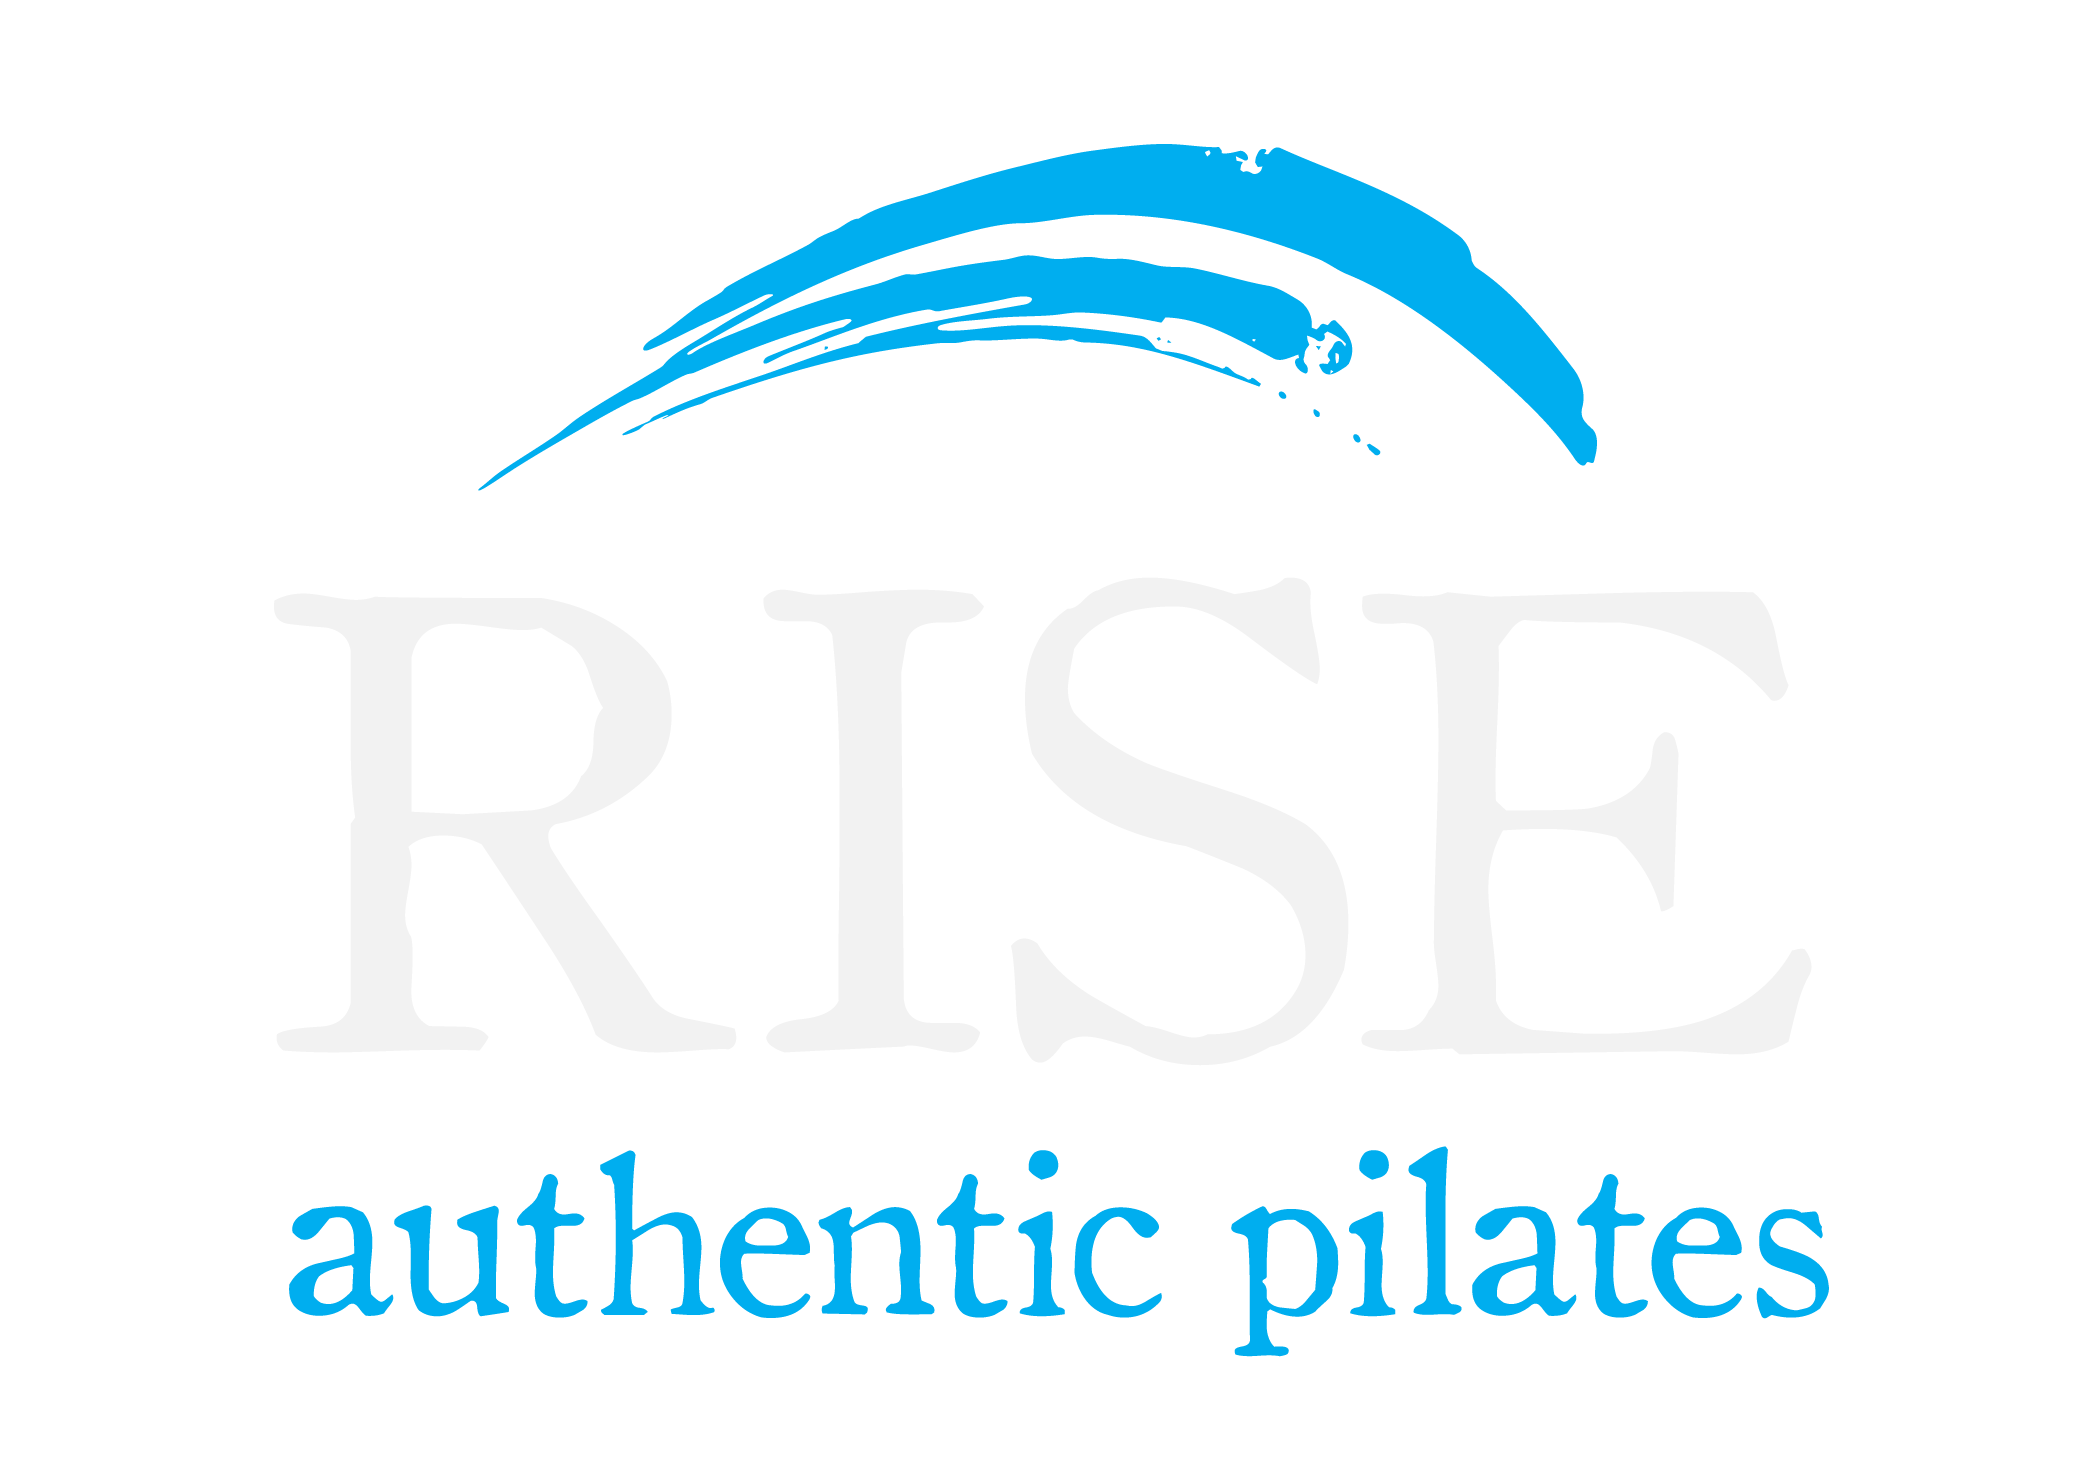 RISE: Authentic Pilates